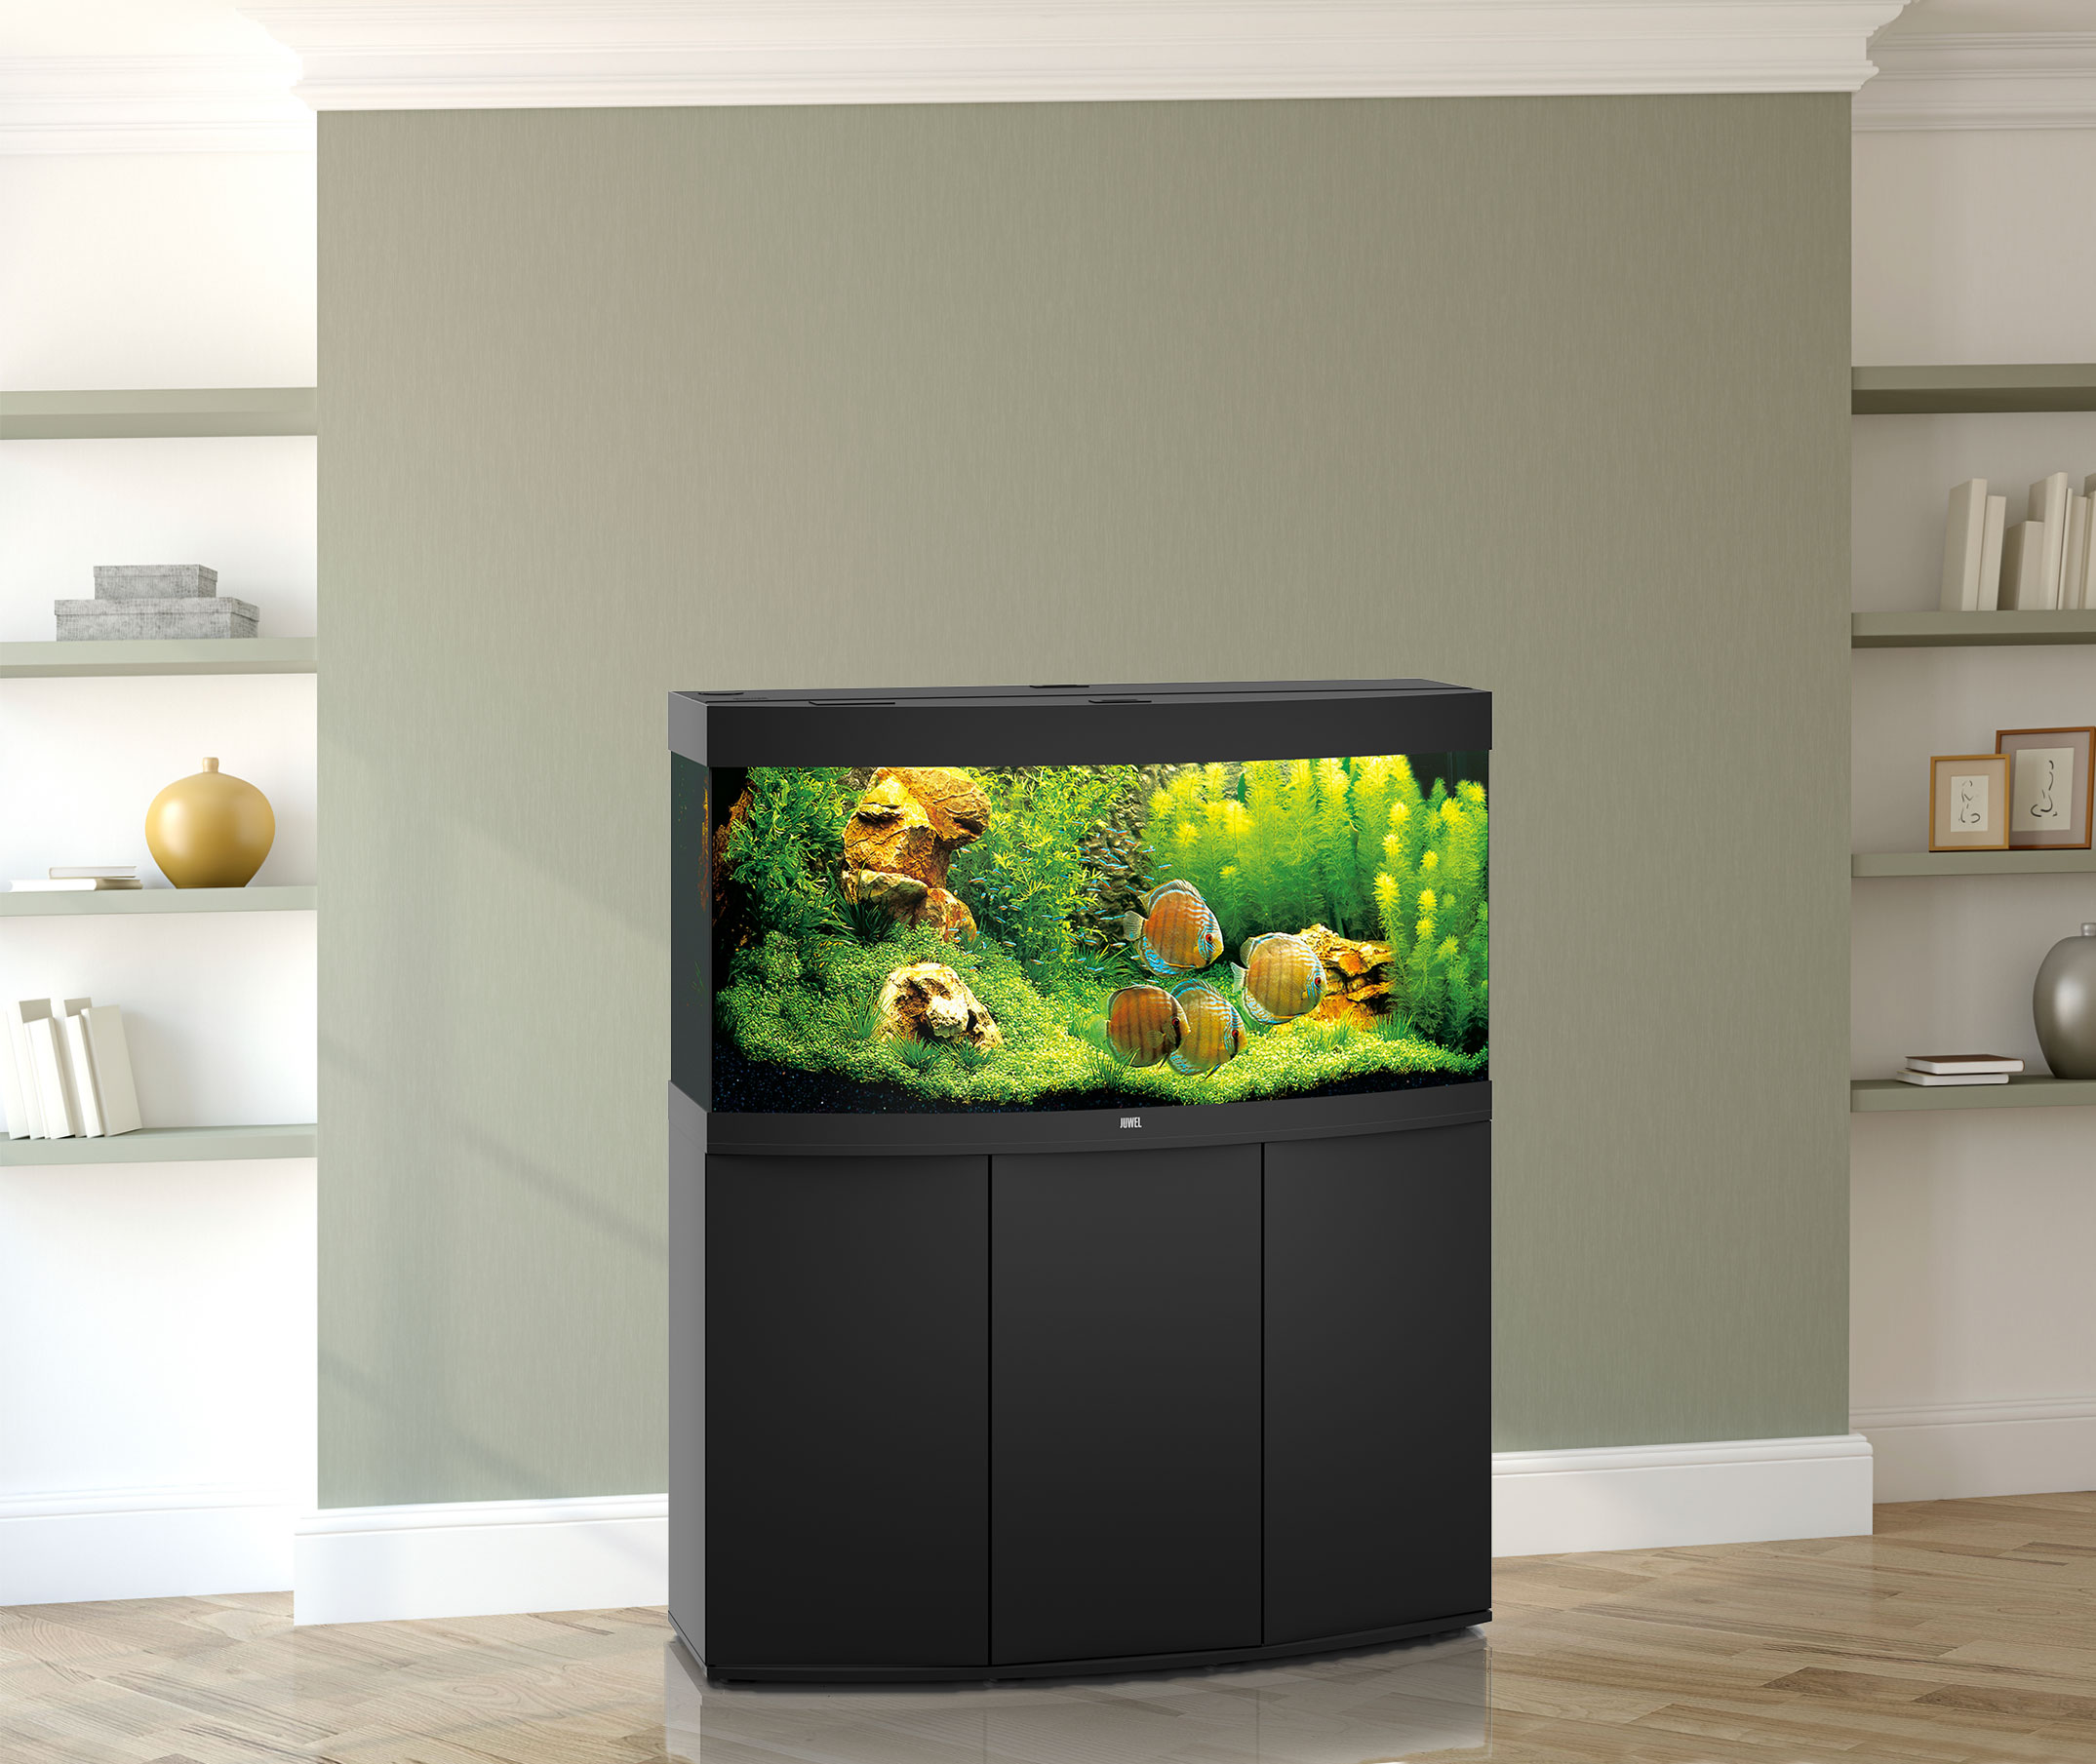 juwel aquarium vision 260 led mit unterschrank sbx bei zooroyal. Black Bedroom Furniture Sets. Home Design Ideas